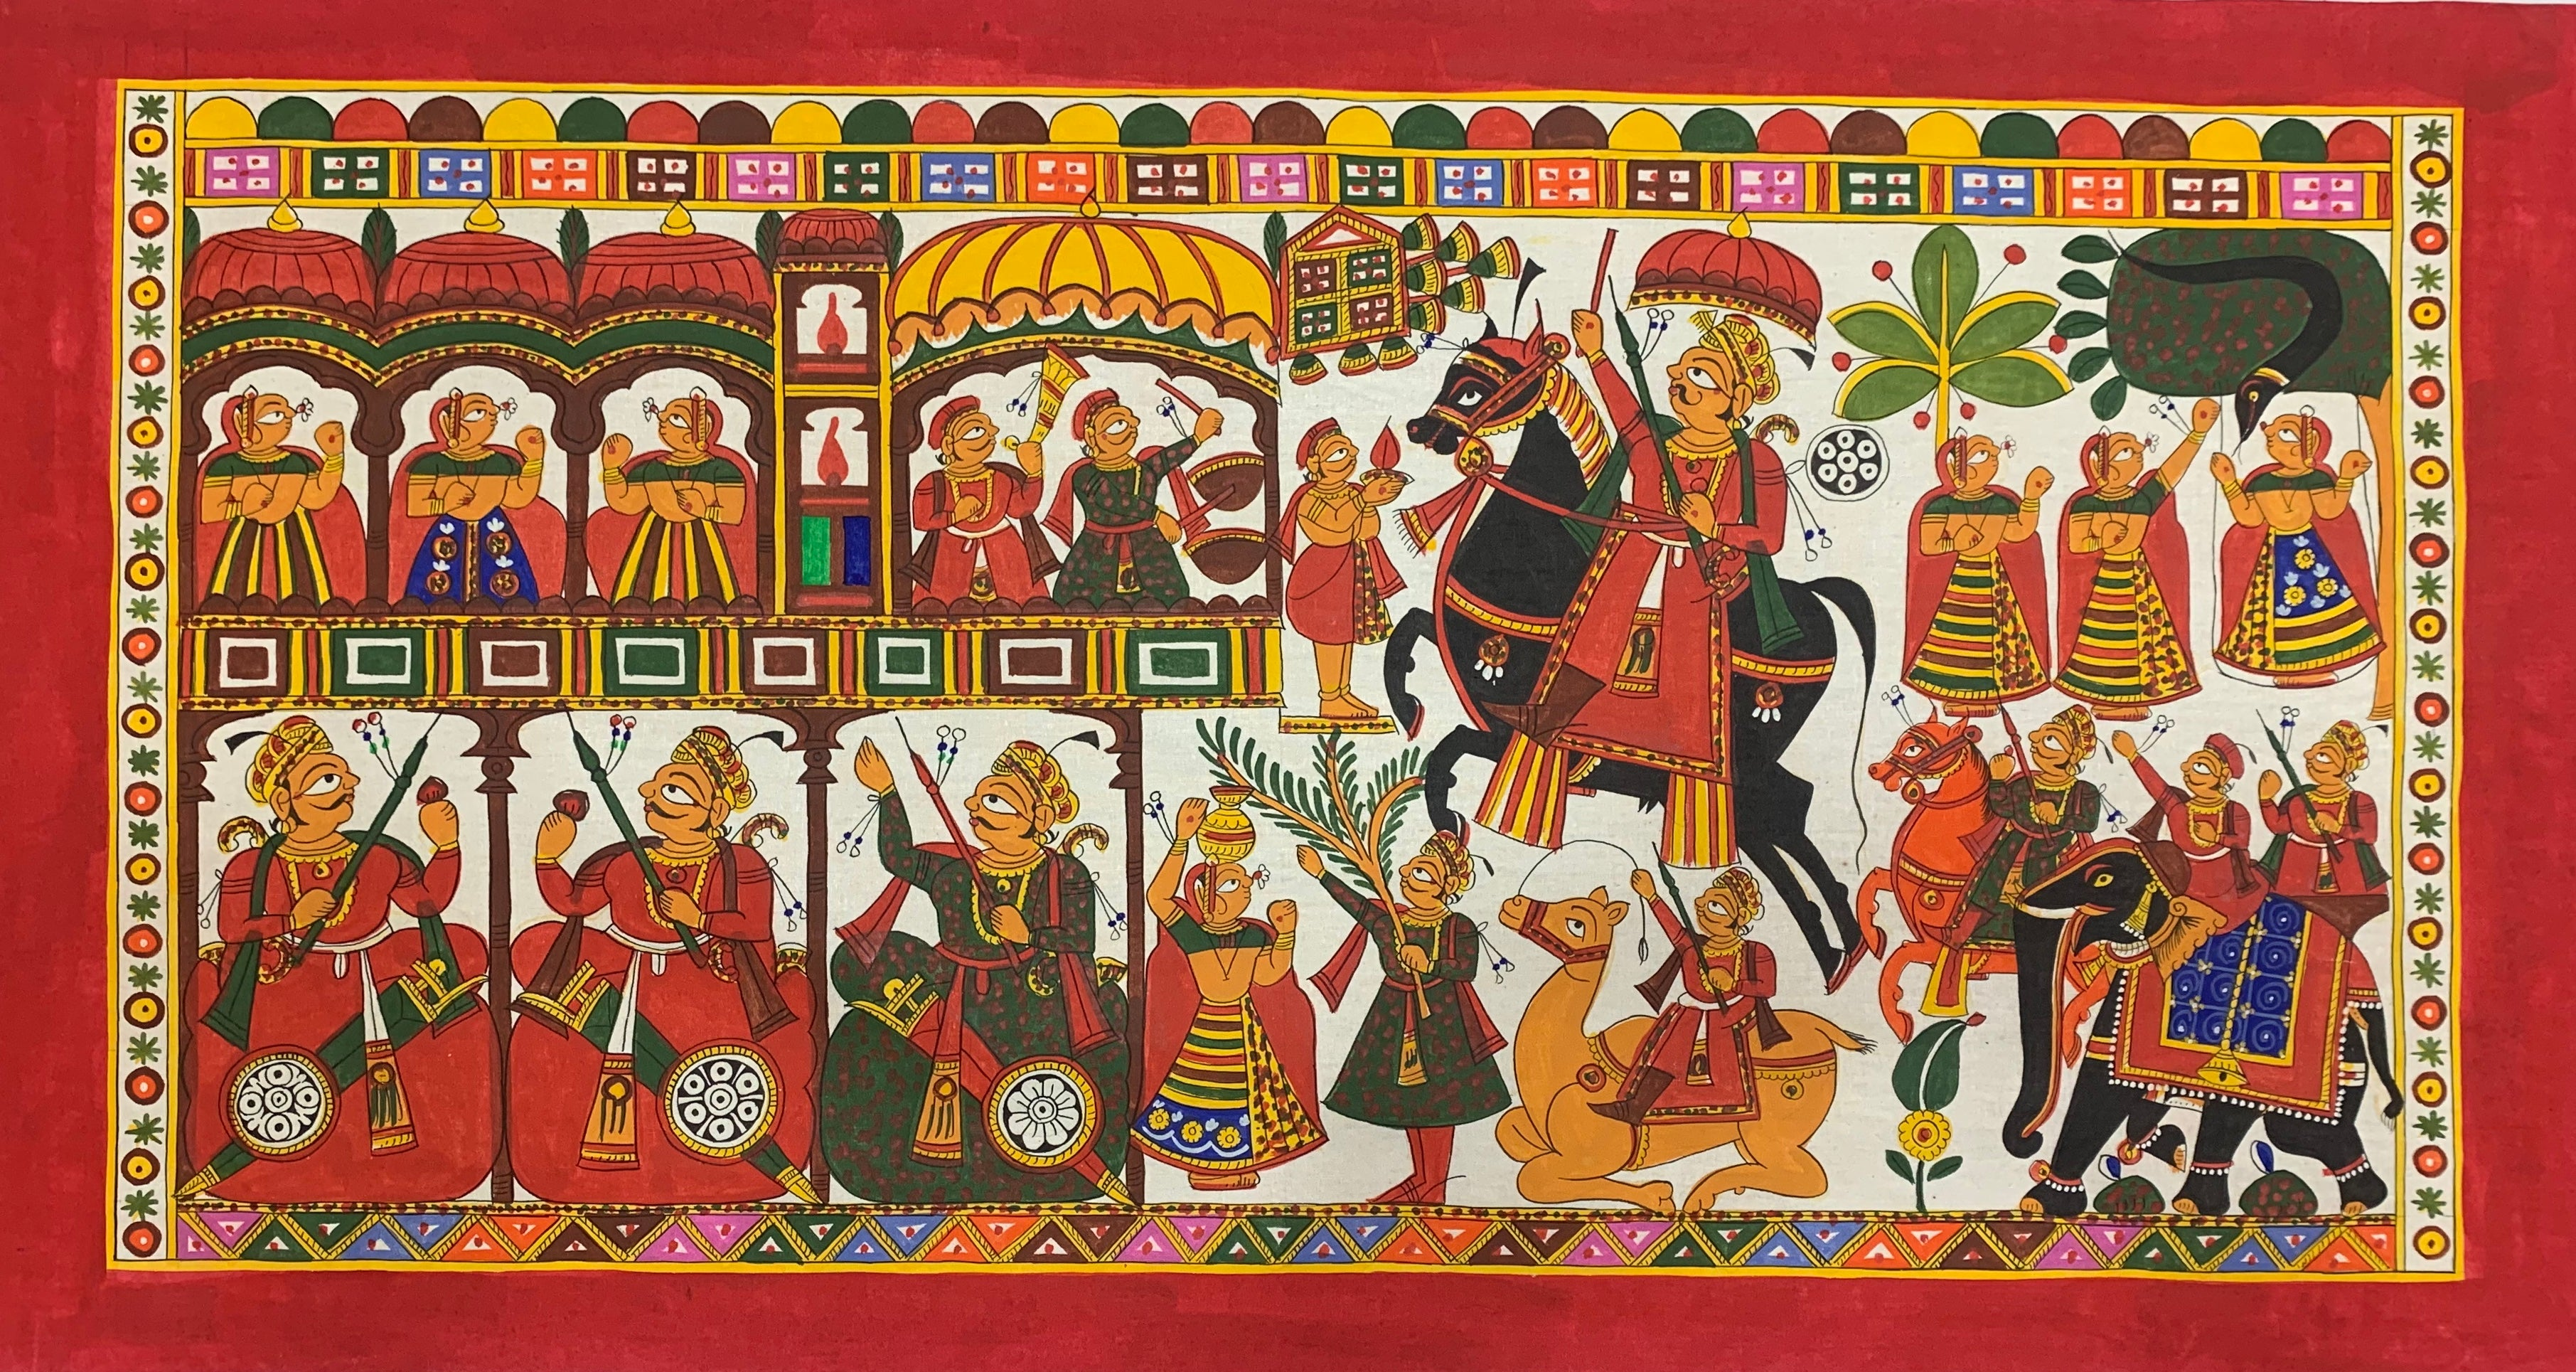 The Procession, Phad painting by Kalyan Joshi